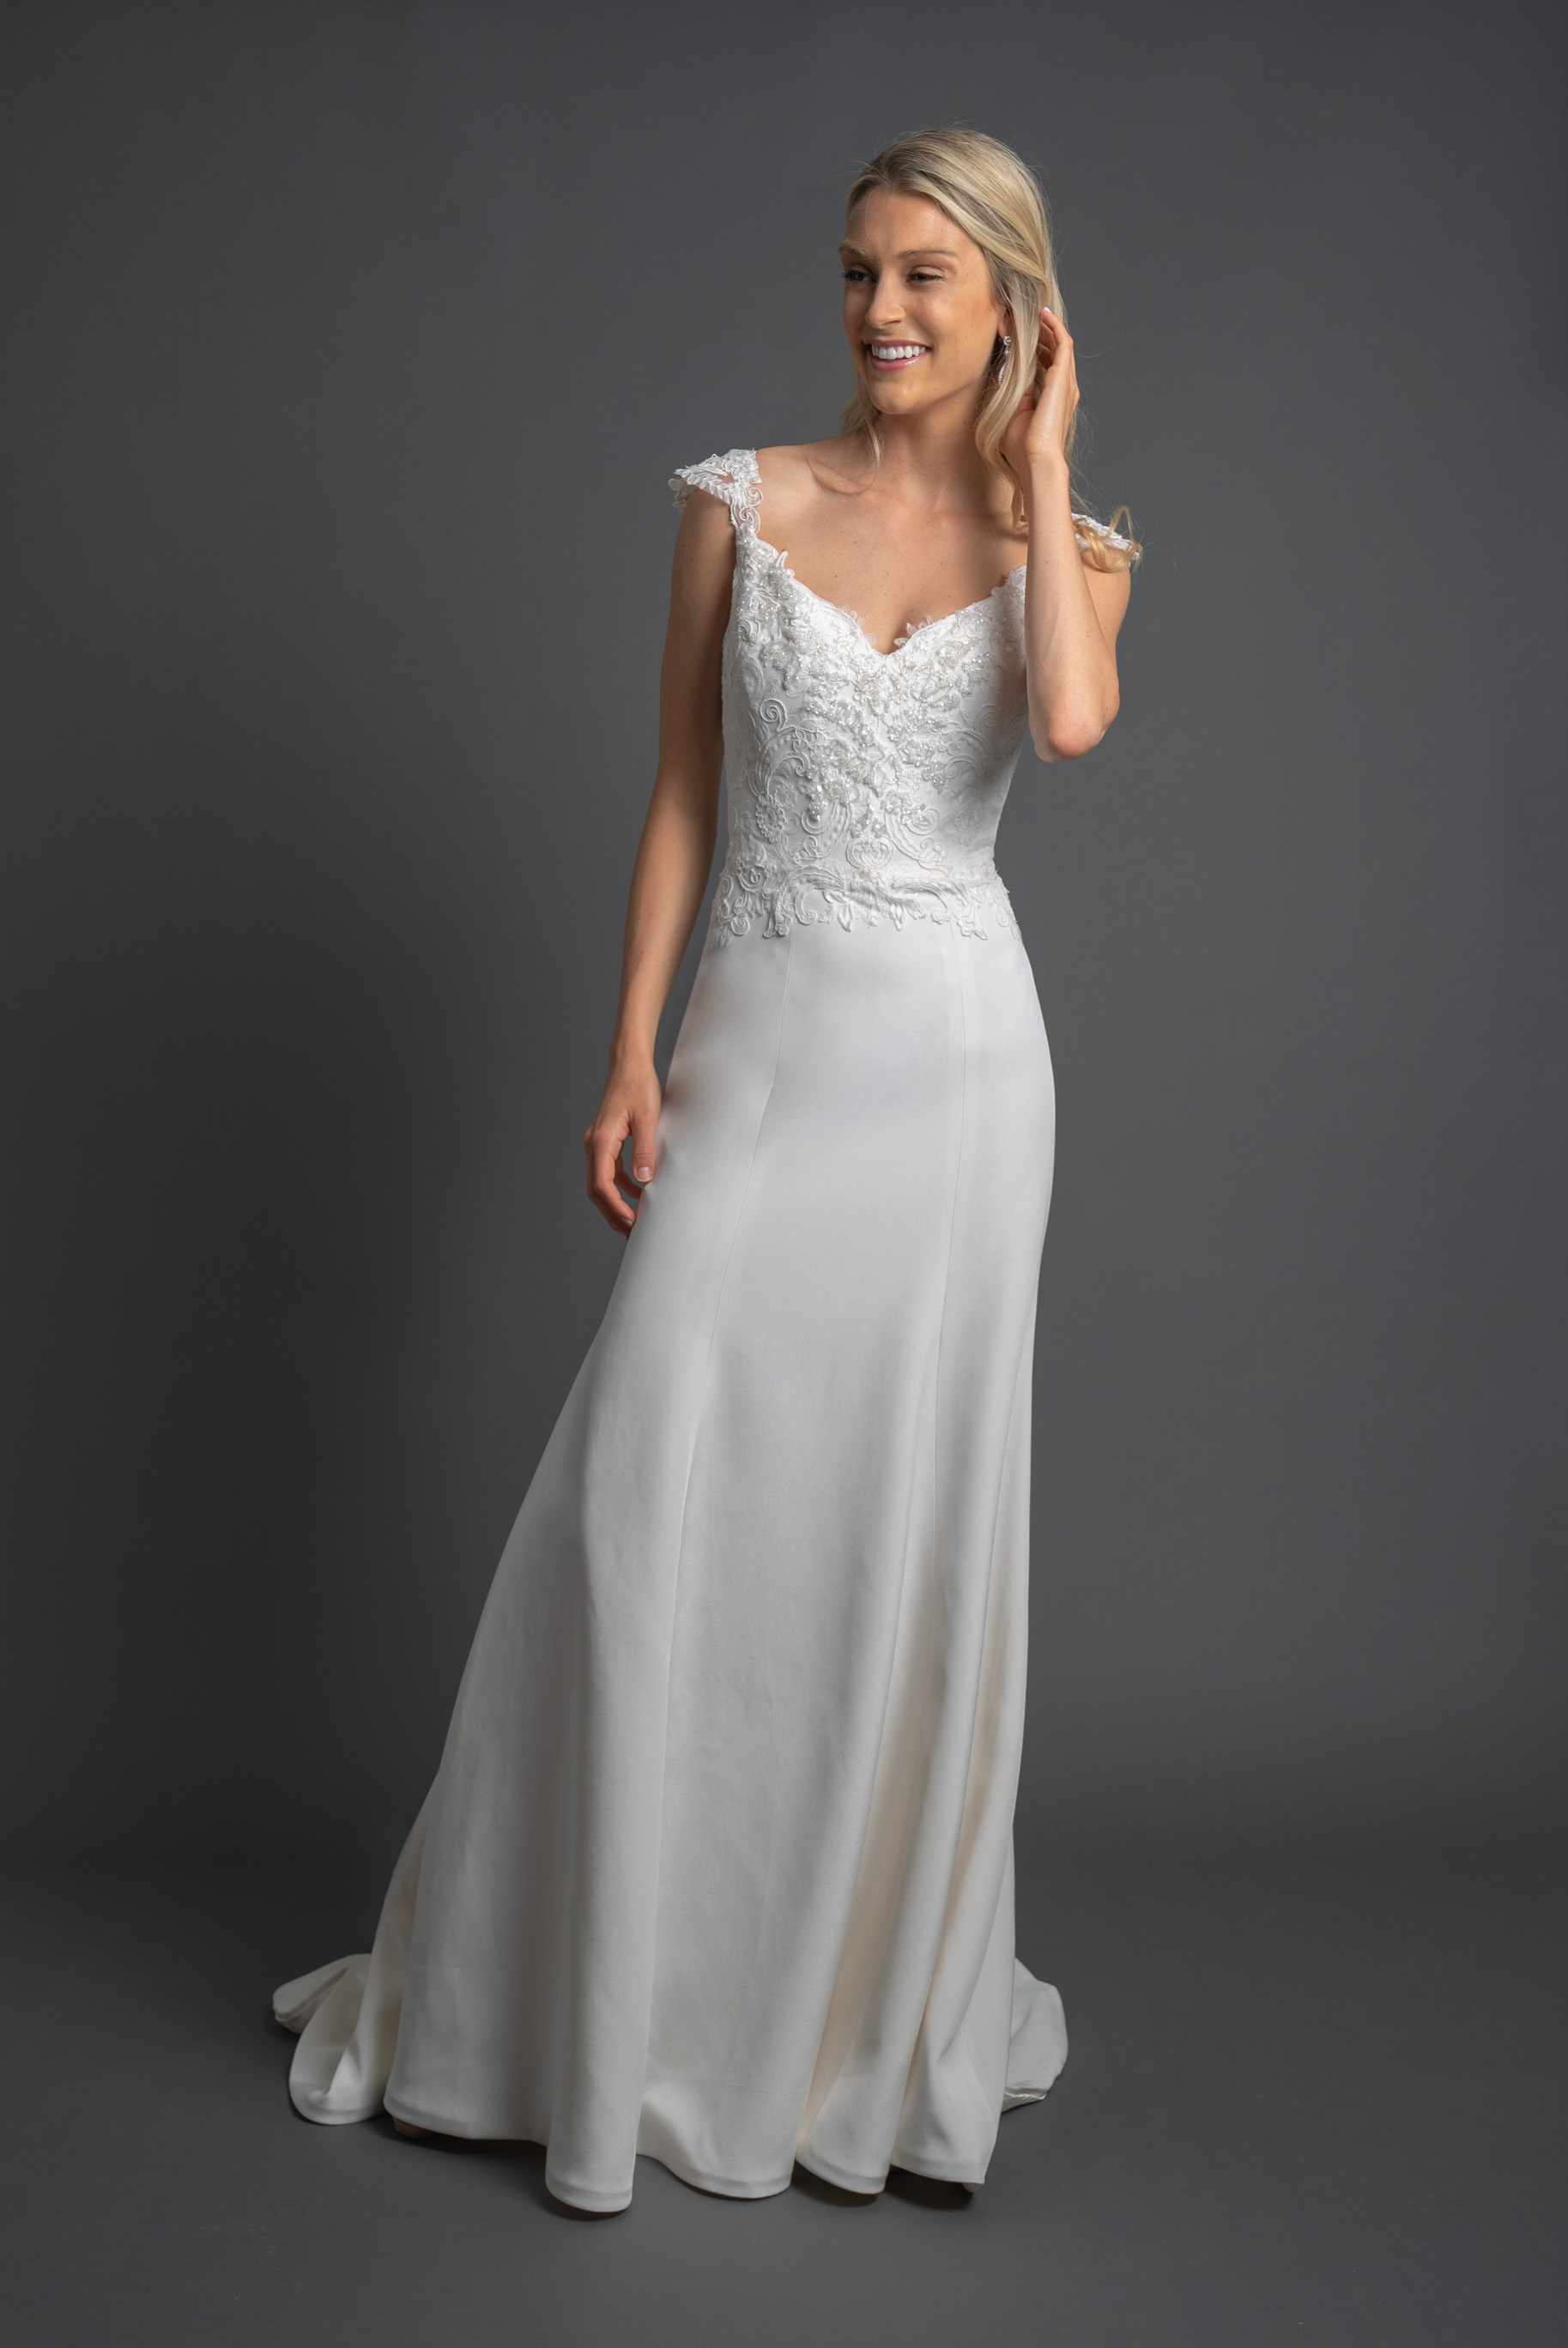 Cap Sleeve Sweetheart Neckline Wedding Dress with Beaded Bodice and Straight Skirt by Modern Trousseau. Made in the USA by Modern Trousseau.